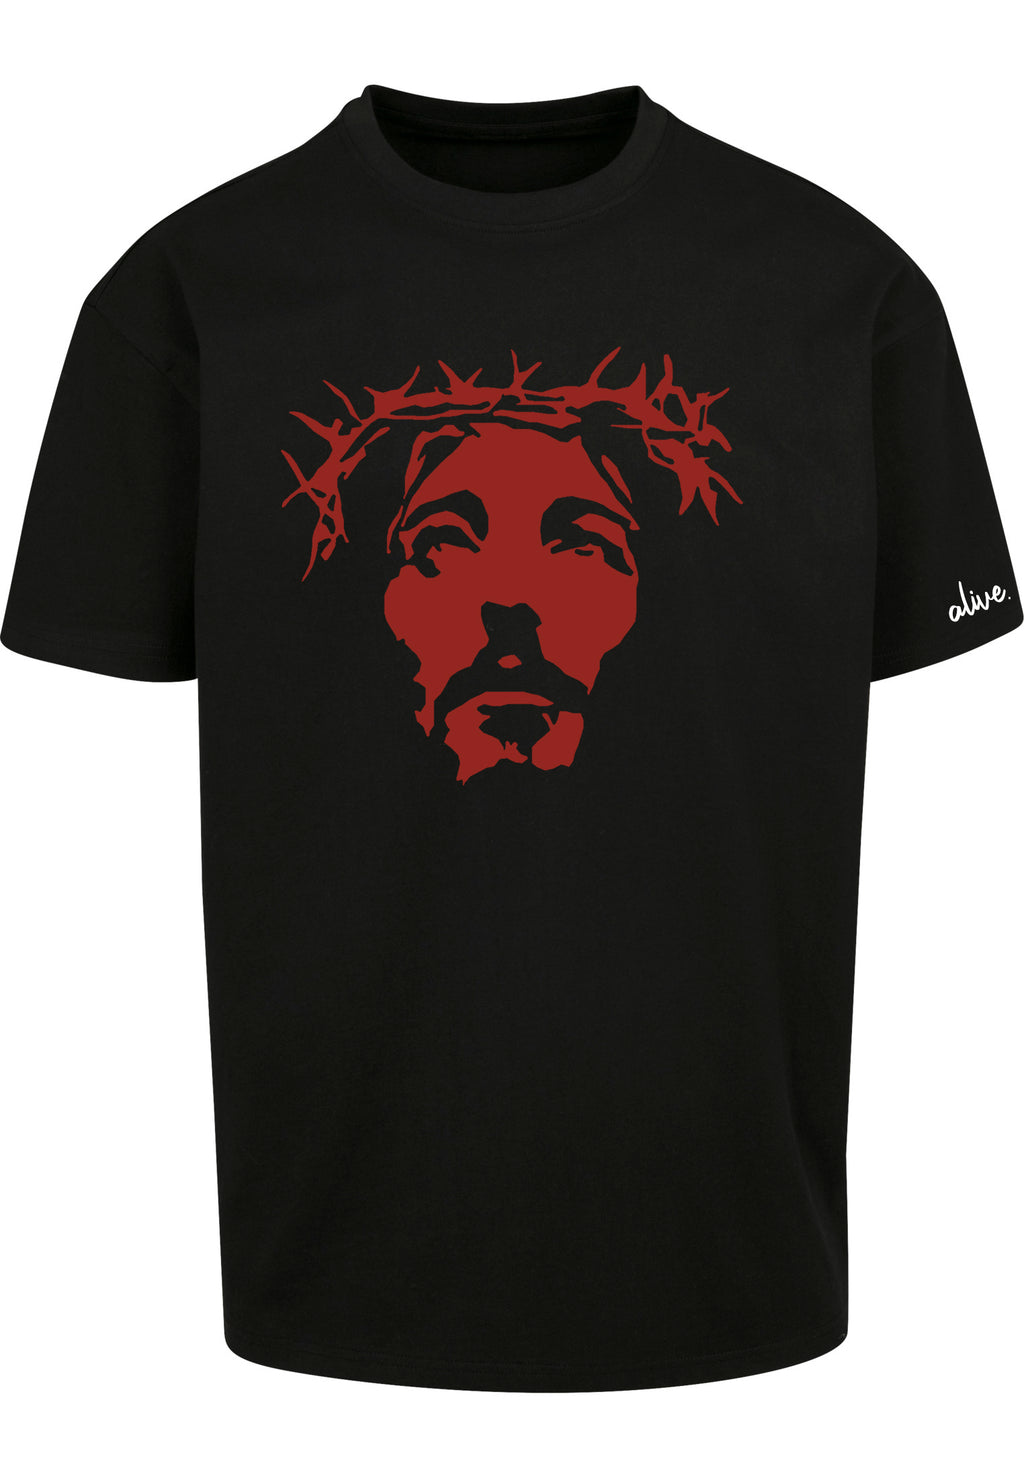 THE SAVIOUR Oversized T-Shirt (Black with Red)